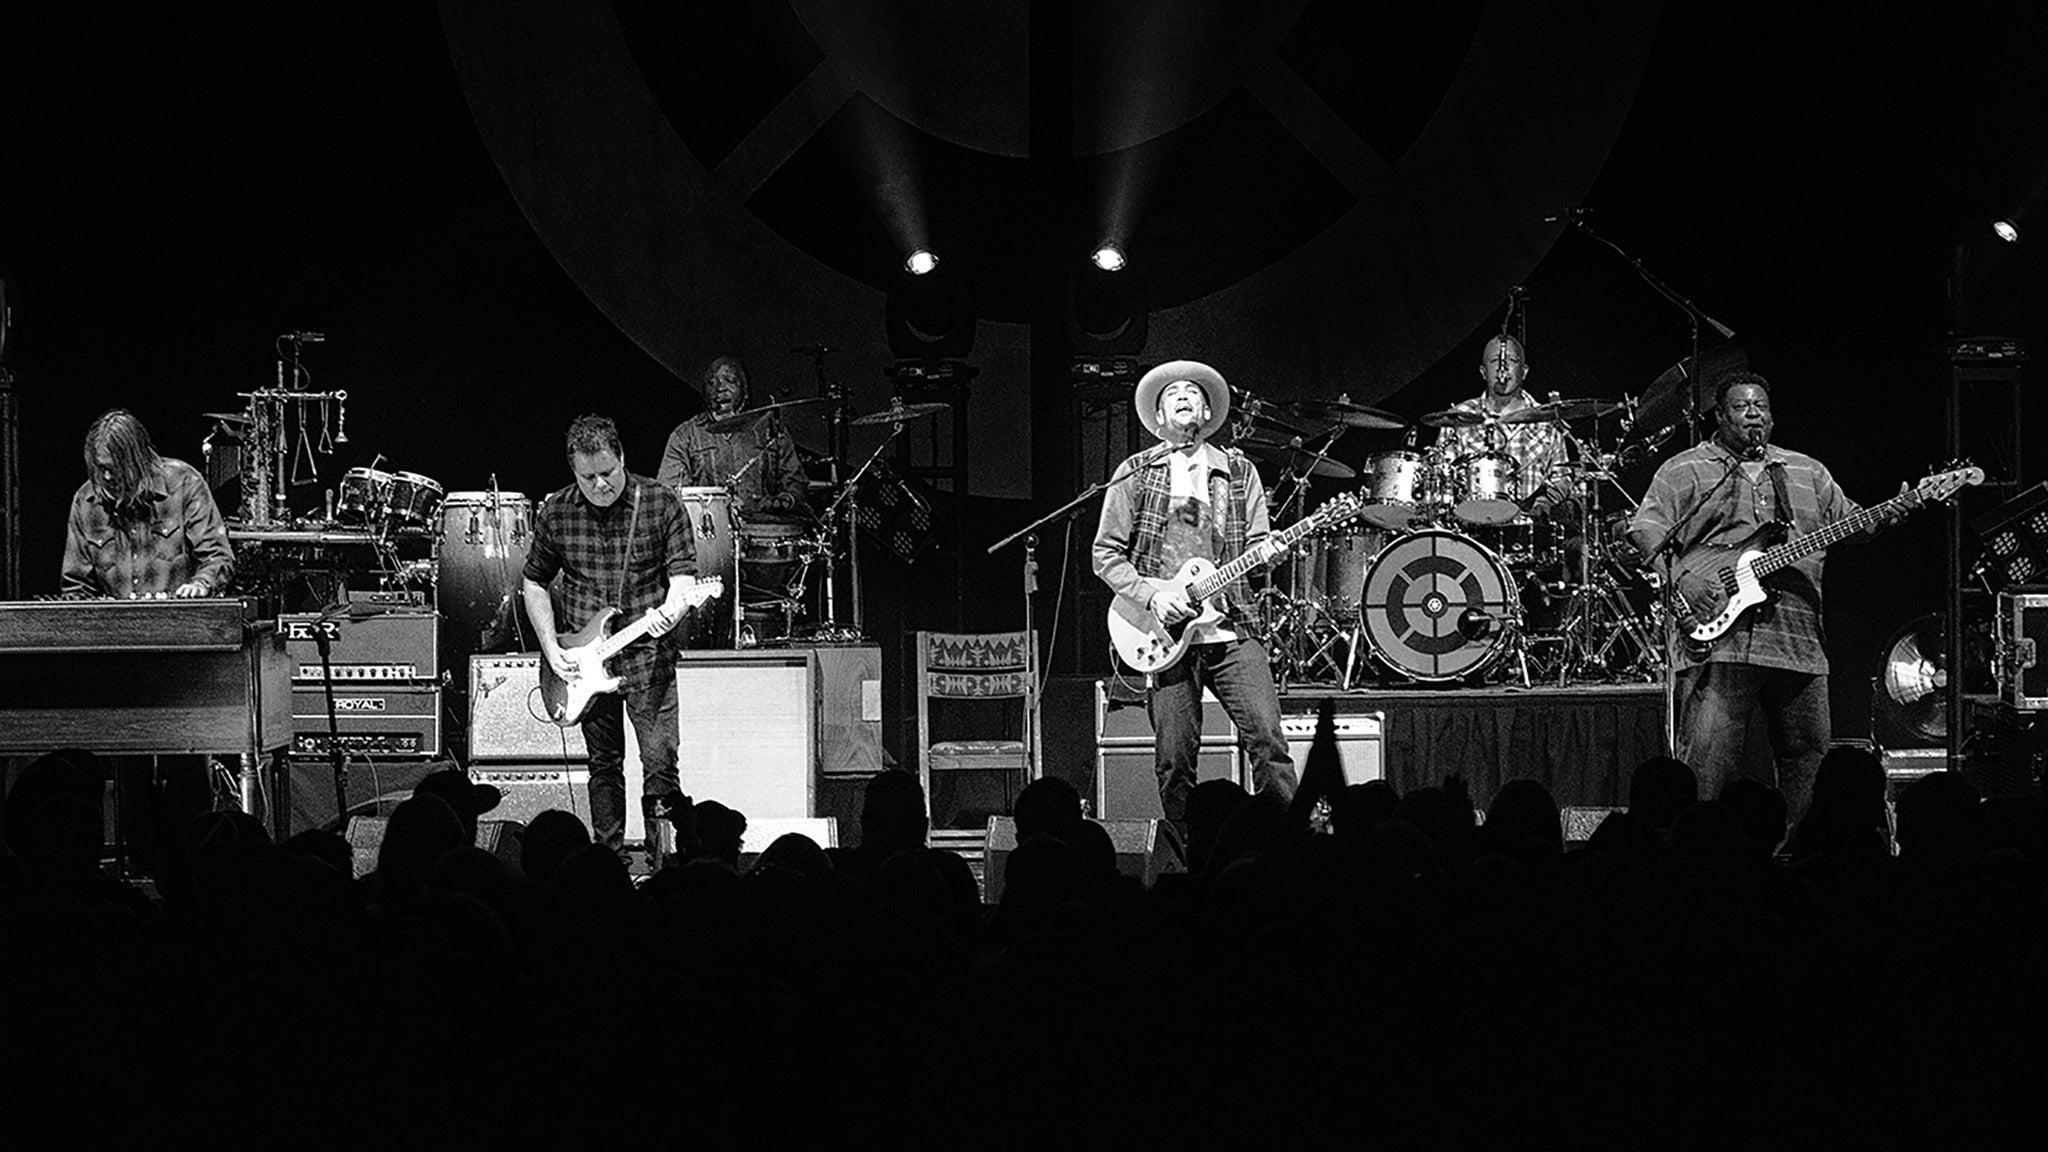 Ben Harper & the Innocent Criminals, Lillie Mae